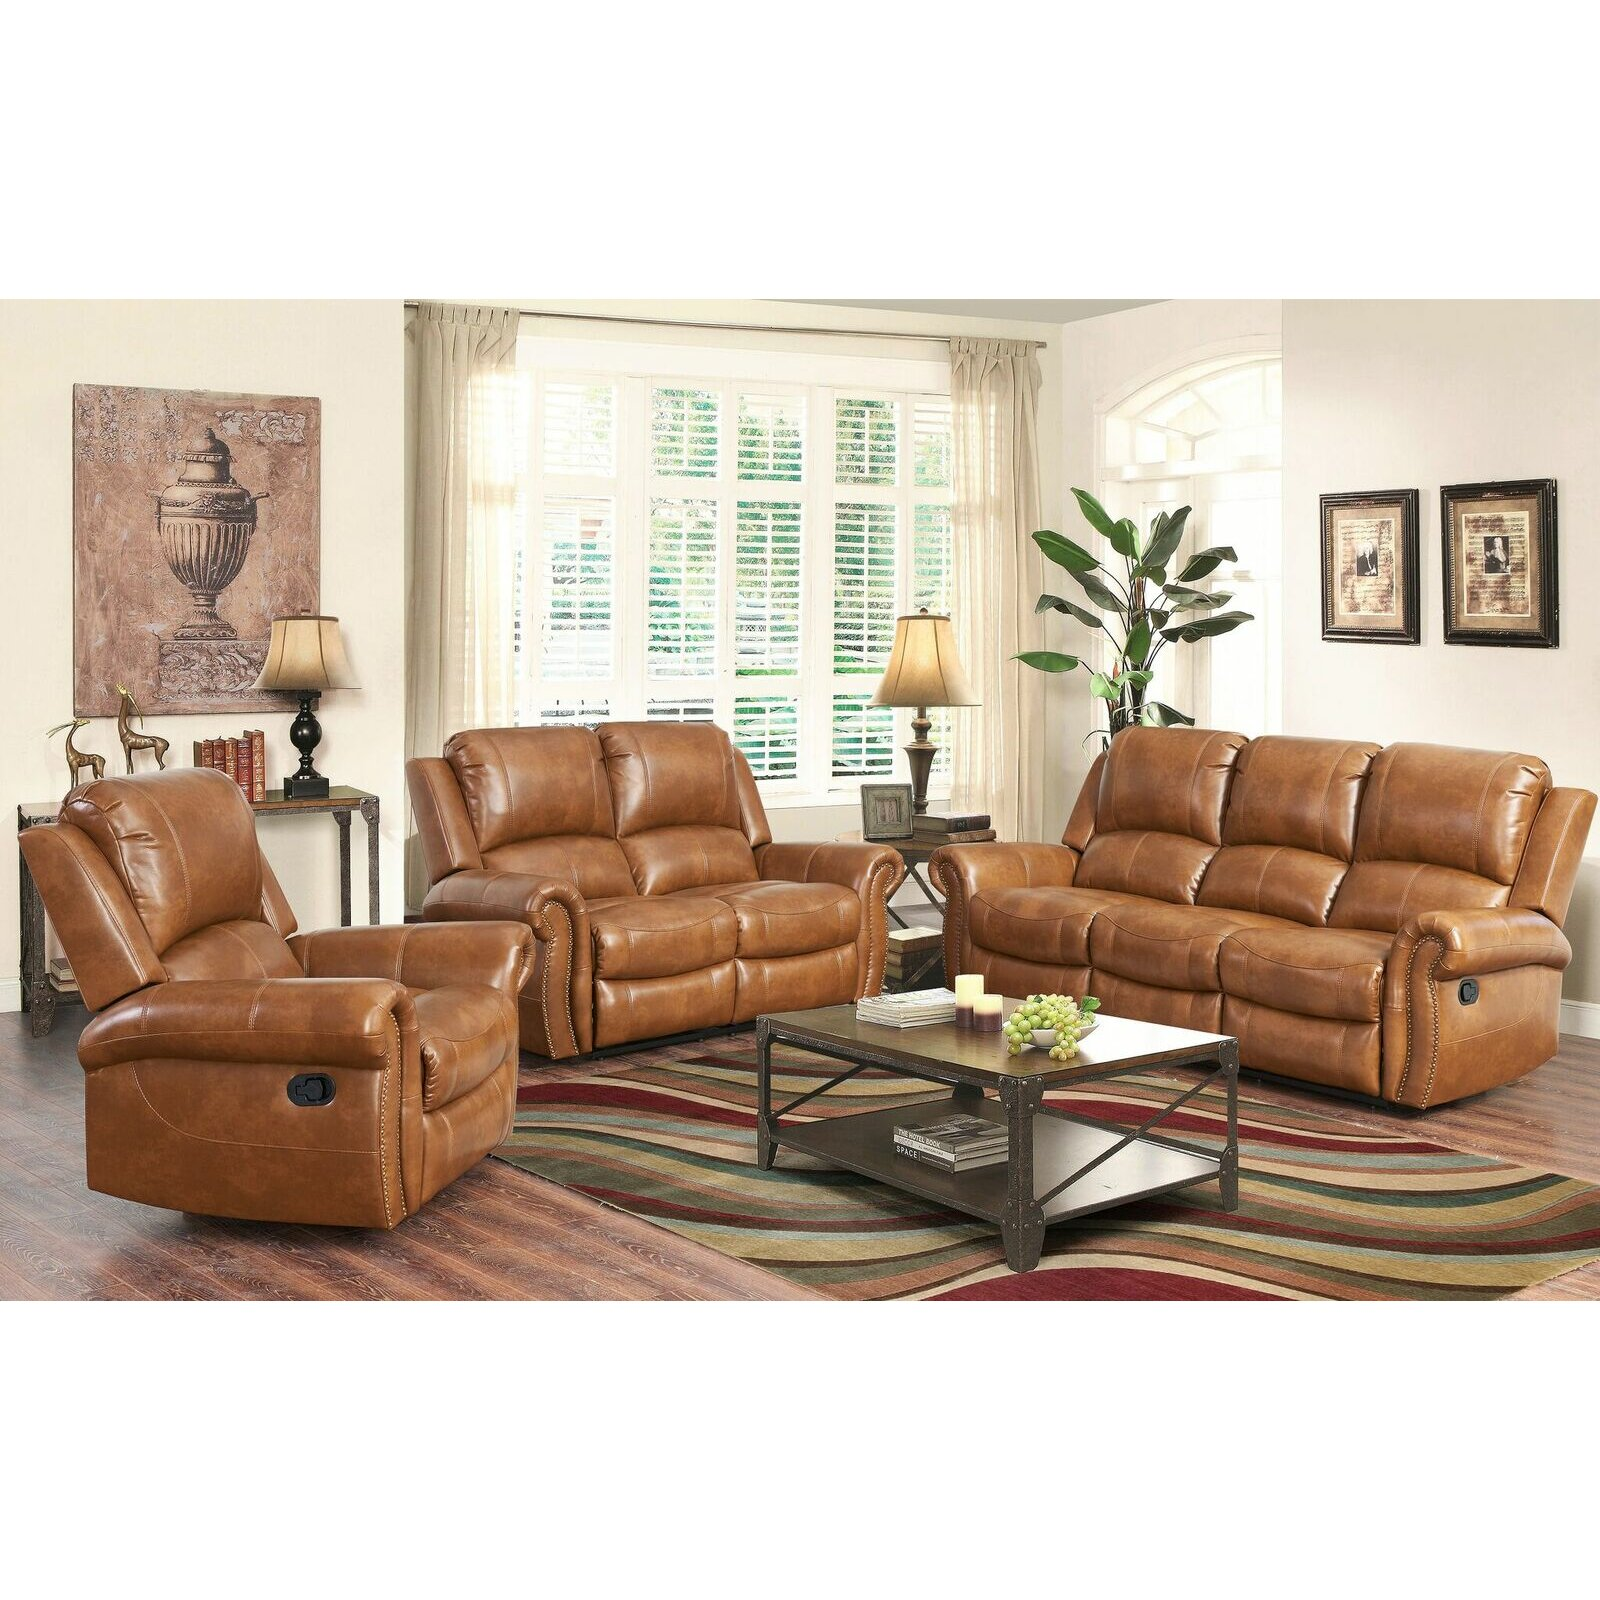 Darby home co bitter root 3 piece leather living room set for Living room 3 piece sets